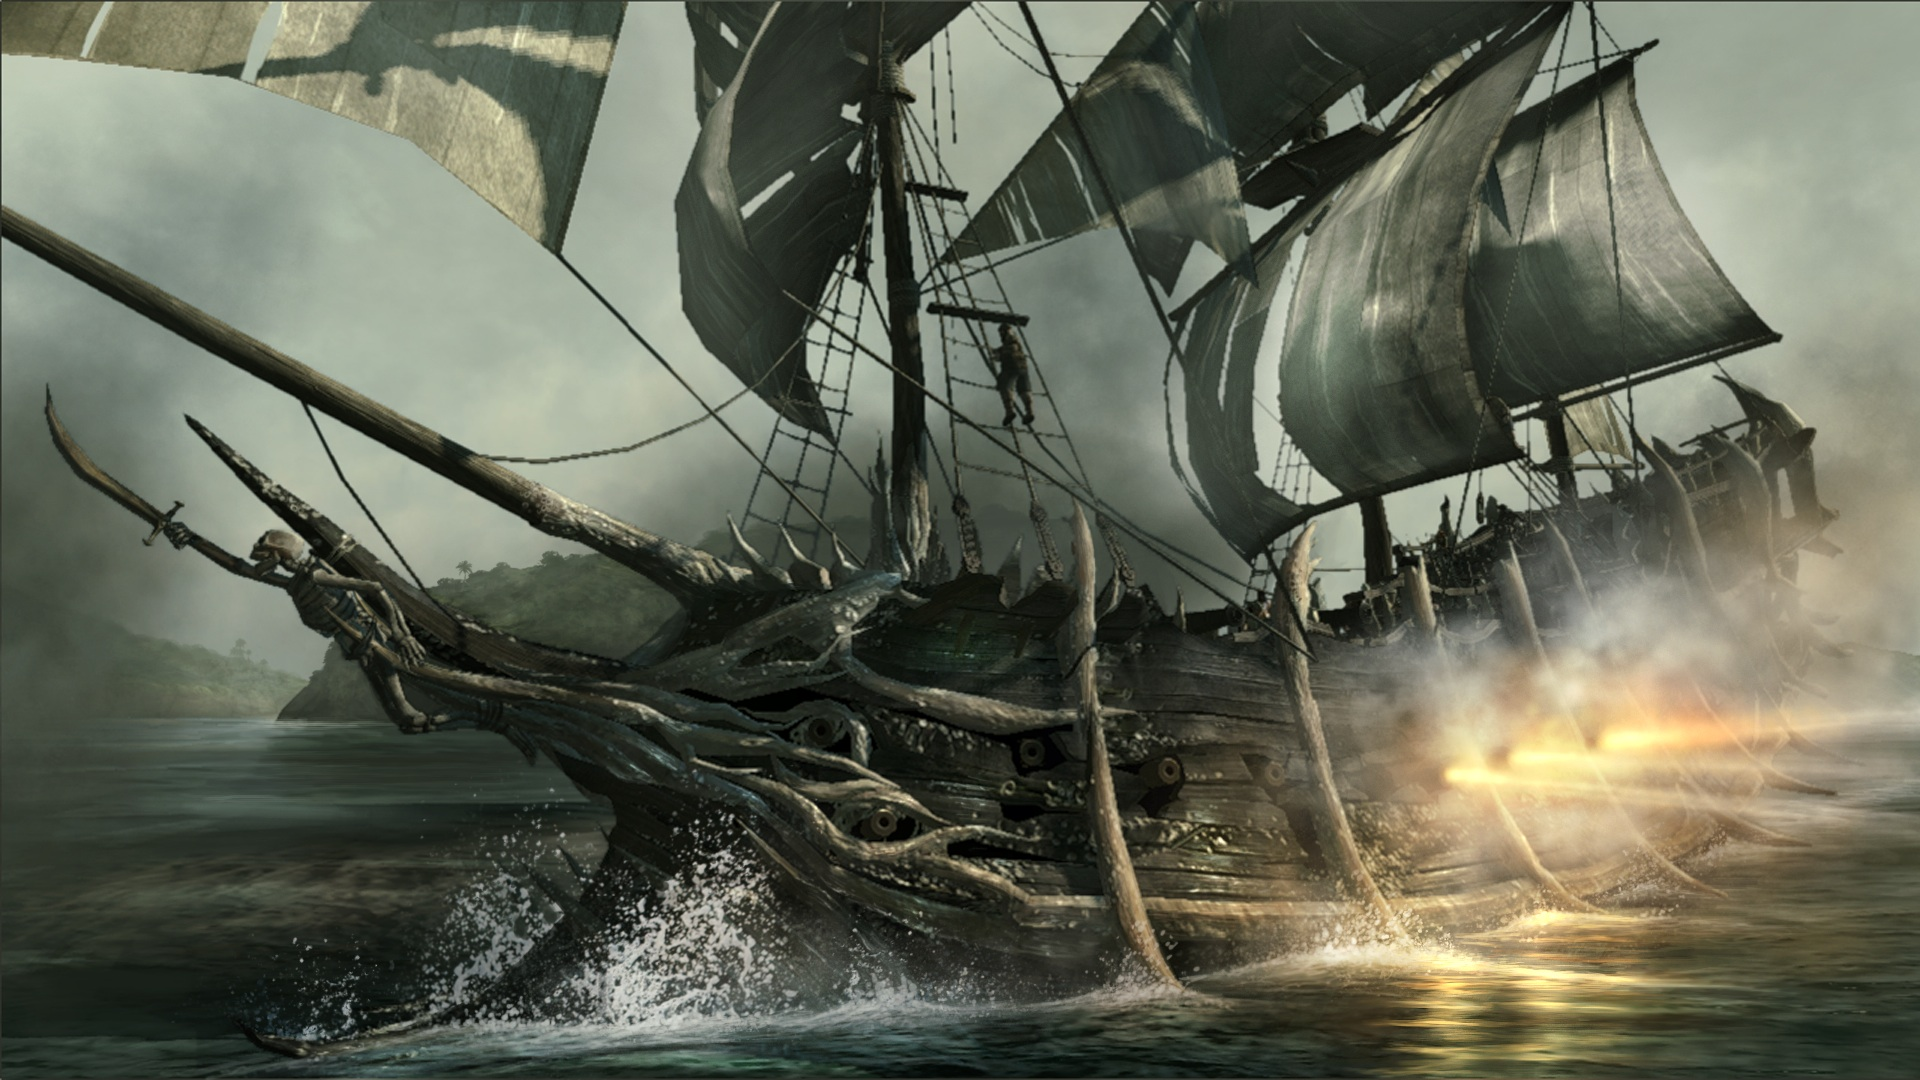 Pirate Computer Wallpapers Desktop Backgrounds 1920x1080 ID 1920x1080